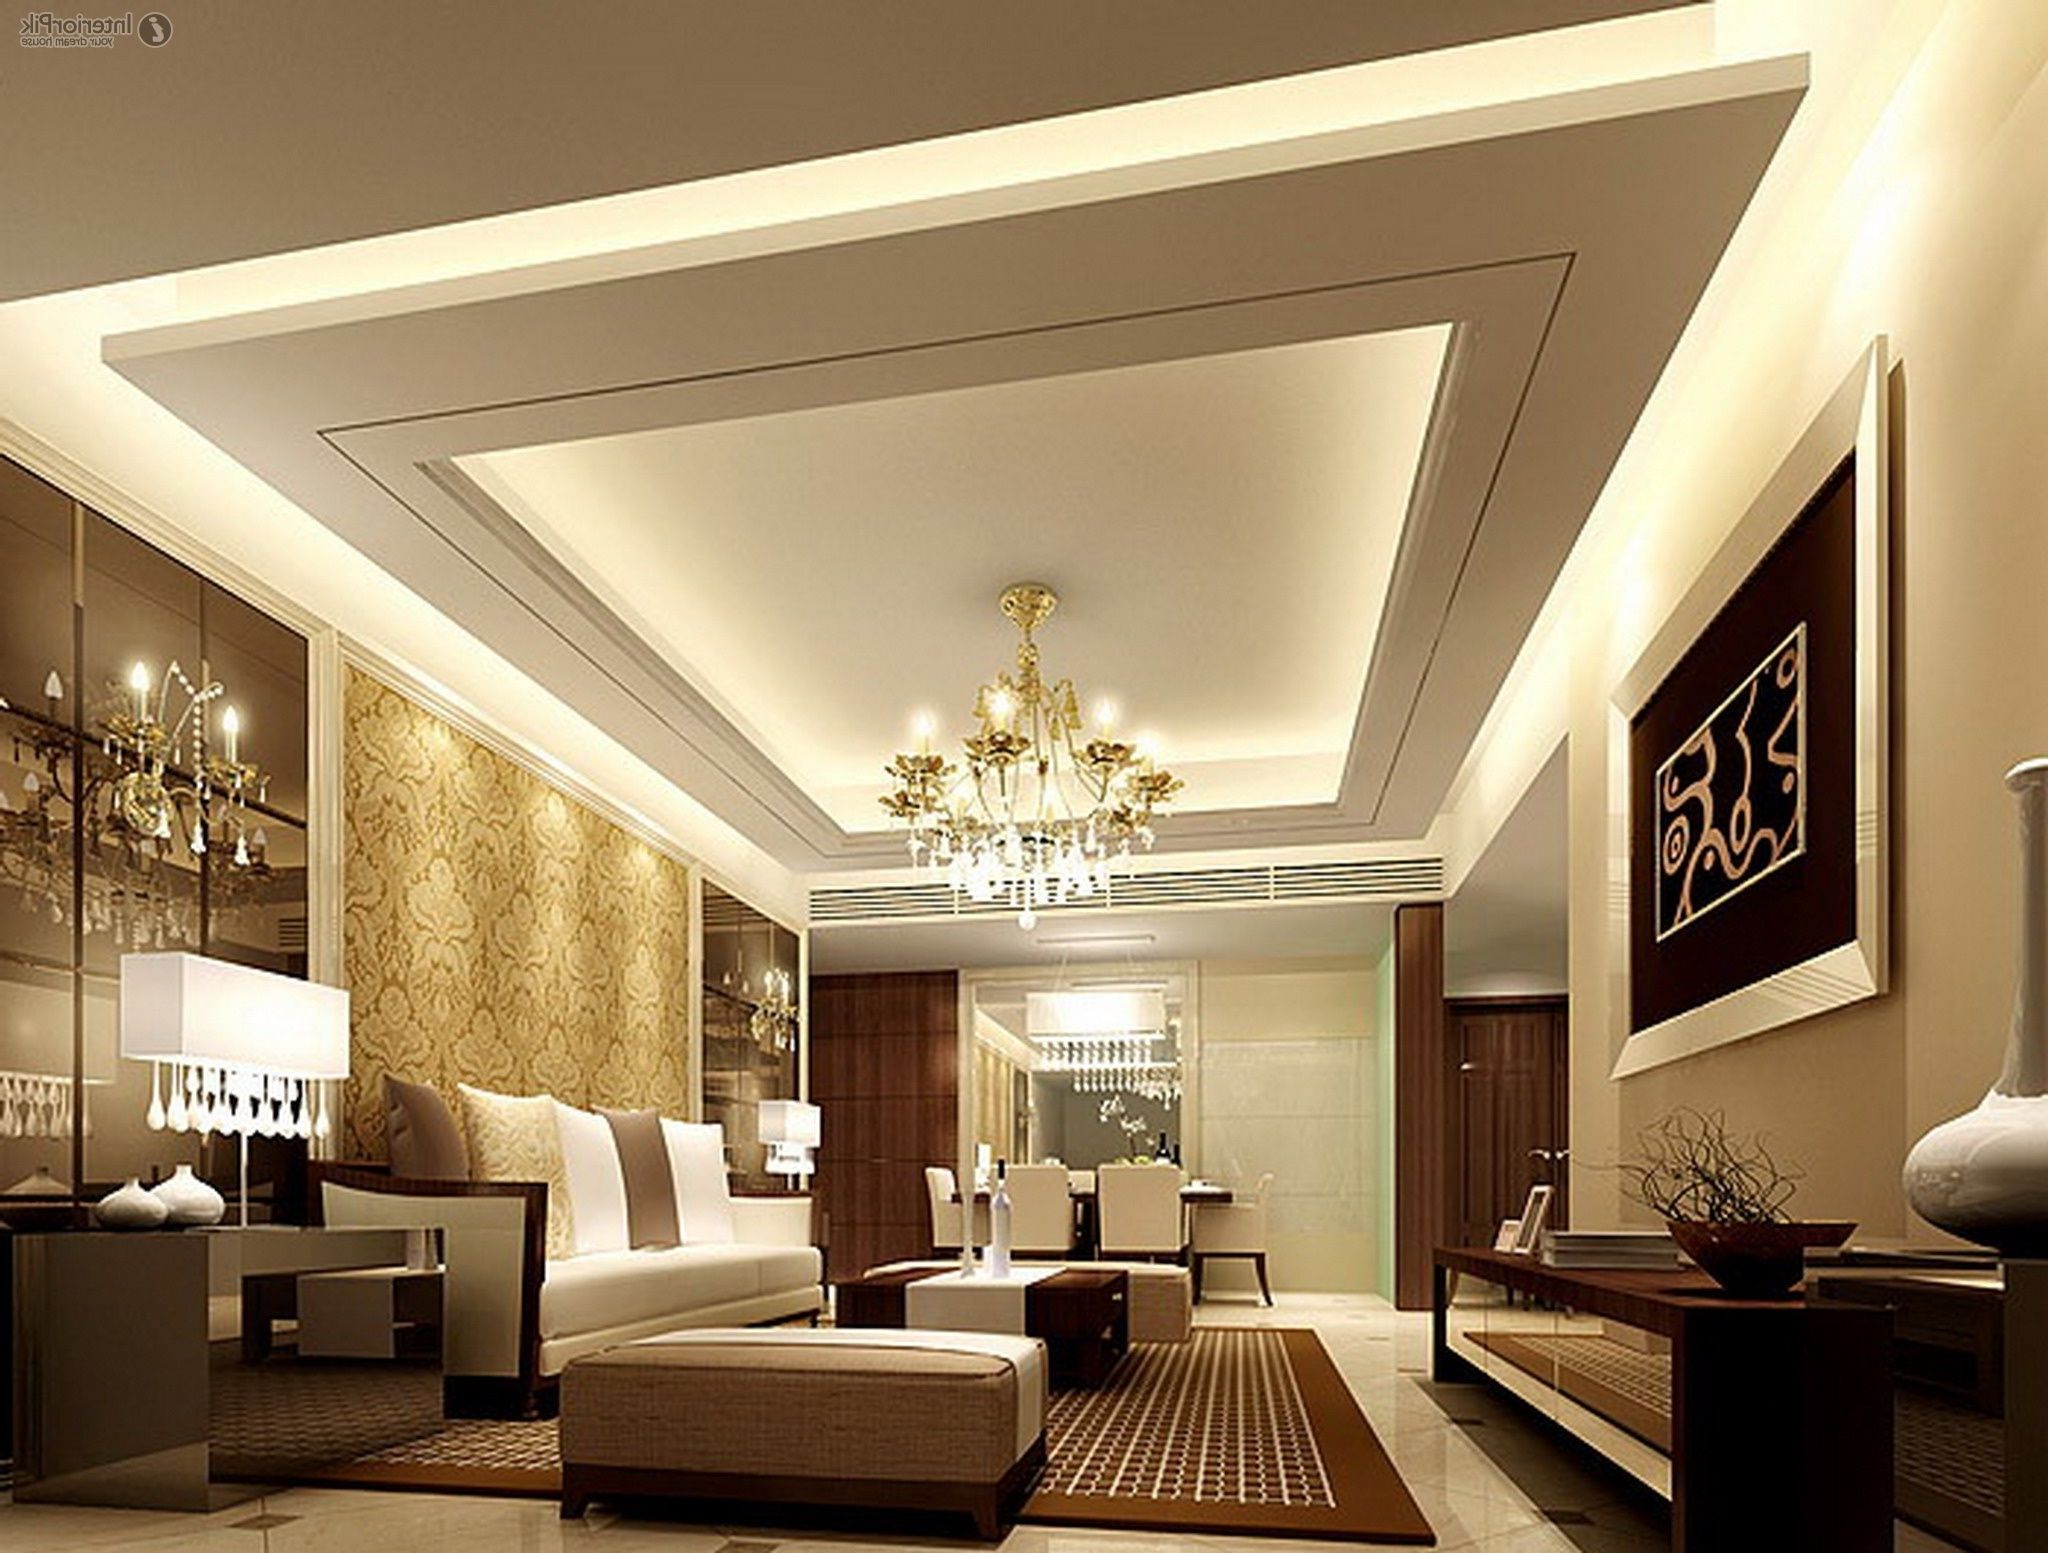 Simple Ceiling Designs For Living Room In India Indian Decorating Ideas Collection Styles And Pictures Home Design Gypsum Lighting Decorate Best